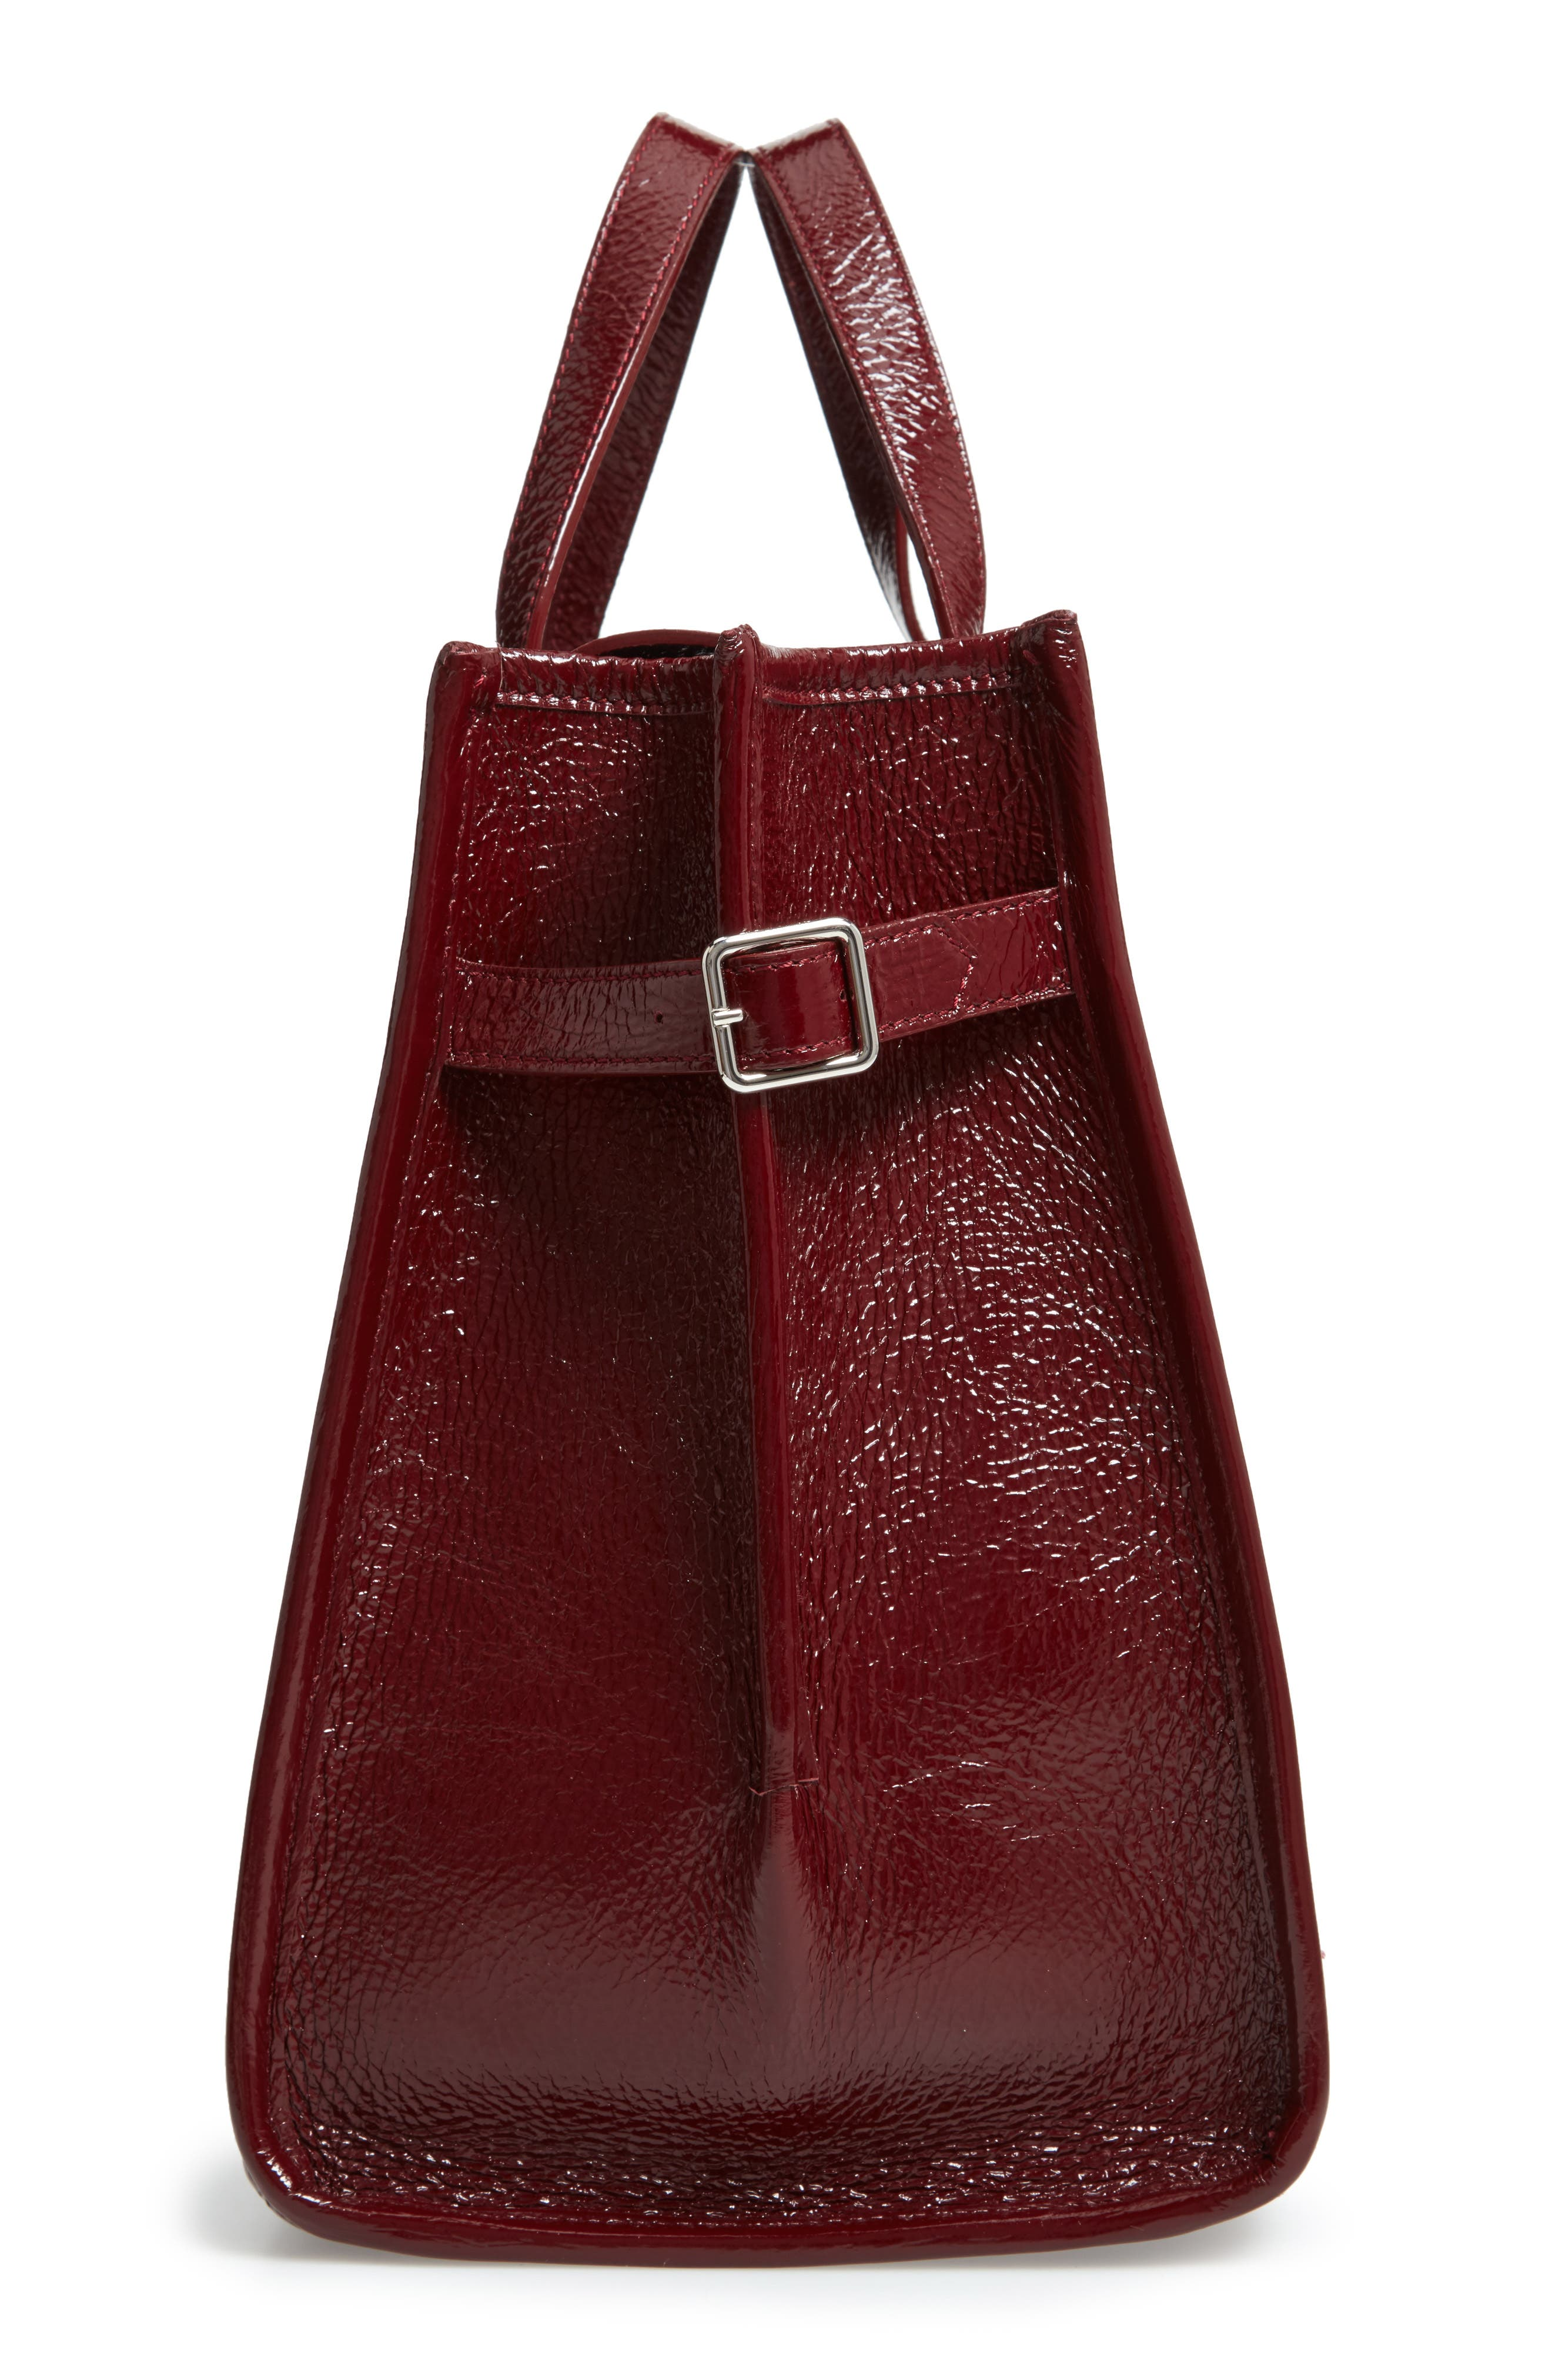 CALVIN KLEIN 209W39NYC East/West Leather Tote,                             Alternate thumbnail 5, color,                             DARK BURGUNDY